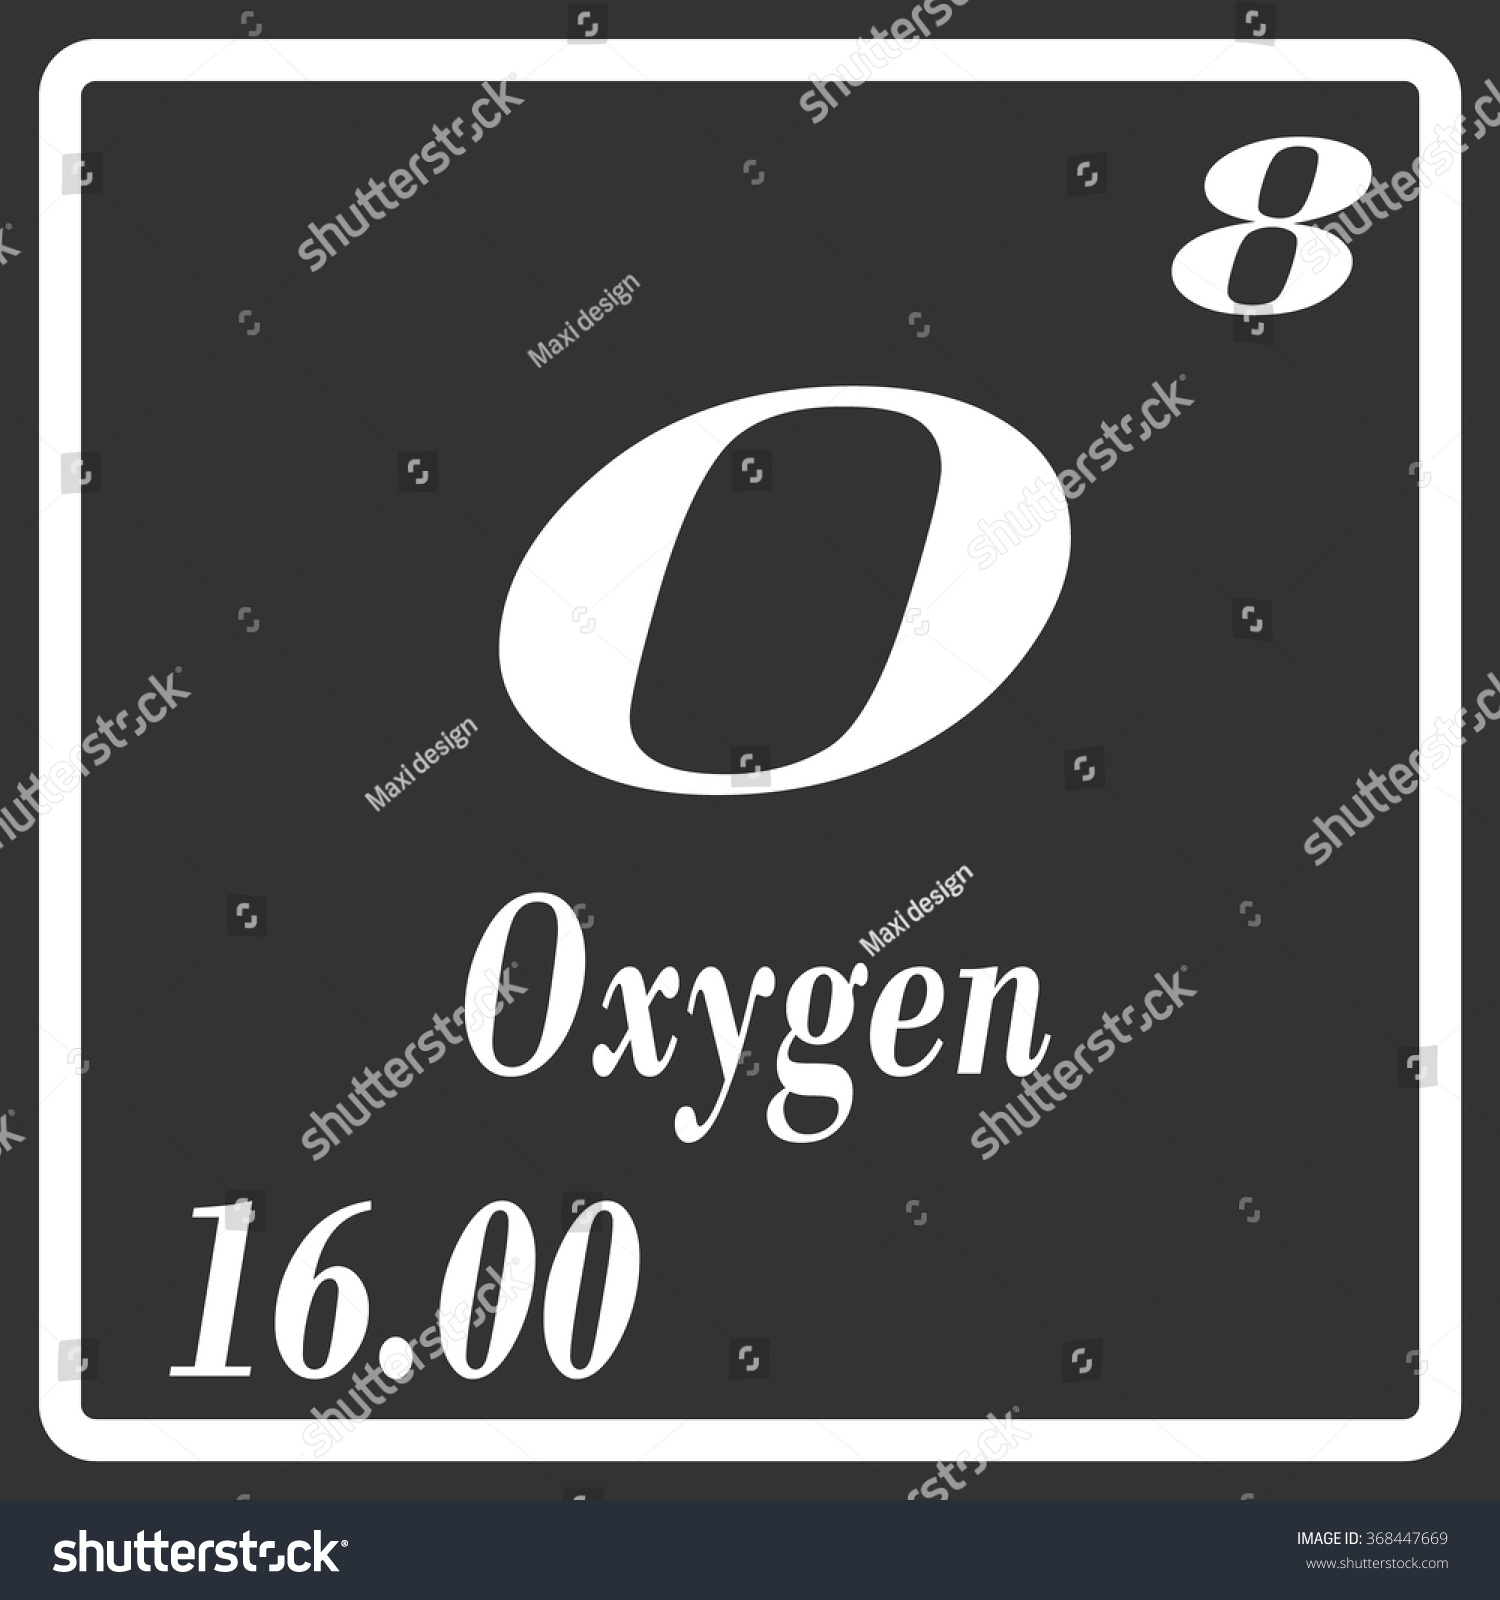 Periodic table elements oxygen stock vector 368447669 shutterstock urtaz Images